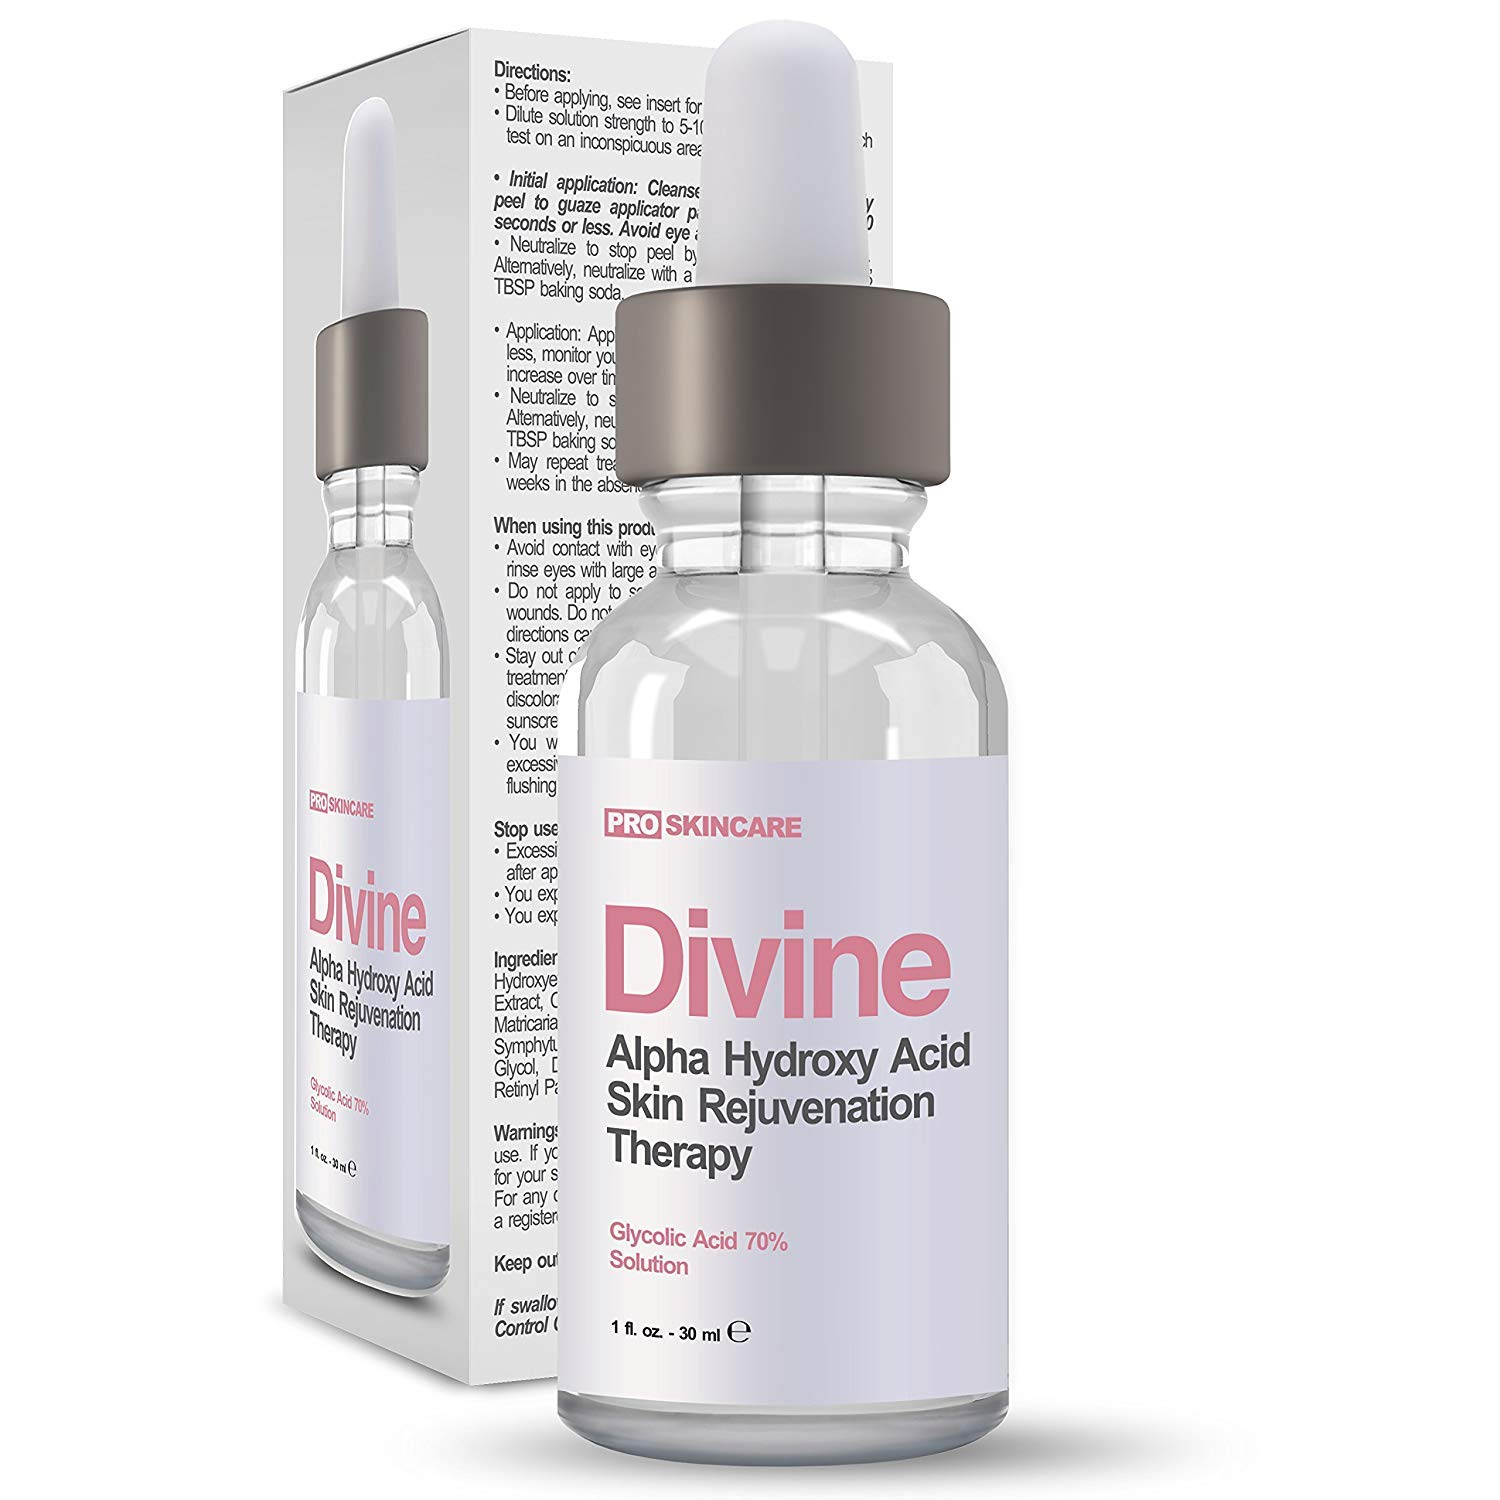 Glycolic Acid 70% Professional Chemical Peel - Intense Alpha Hydroxy Acid Skin Peel For Acne Scarring, Wrinkles, Fine Lines and Brown Spots. 1 fl oz by DIVINE DERRIERE